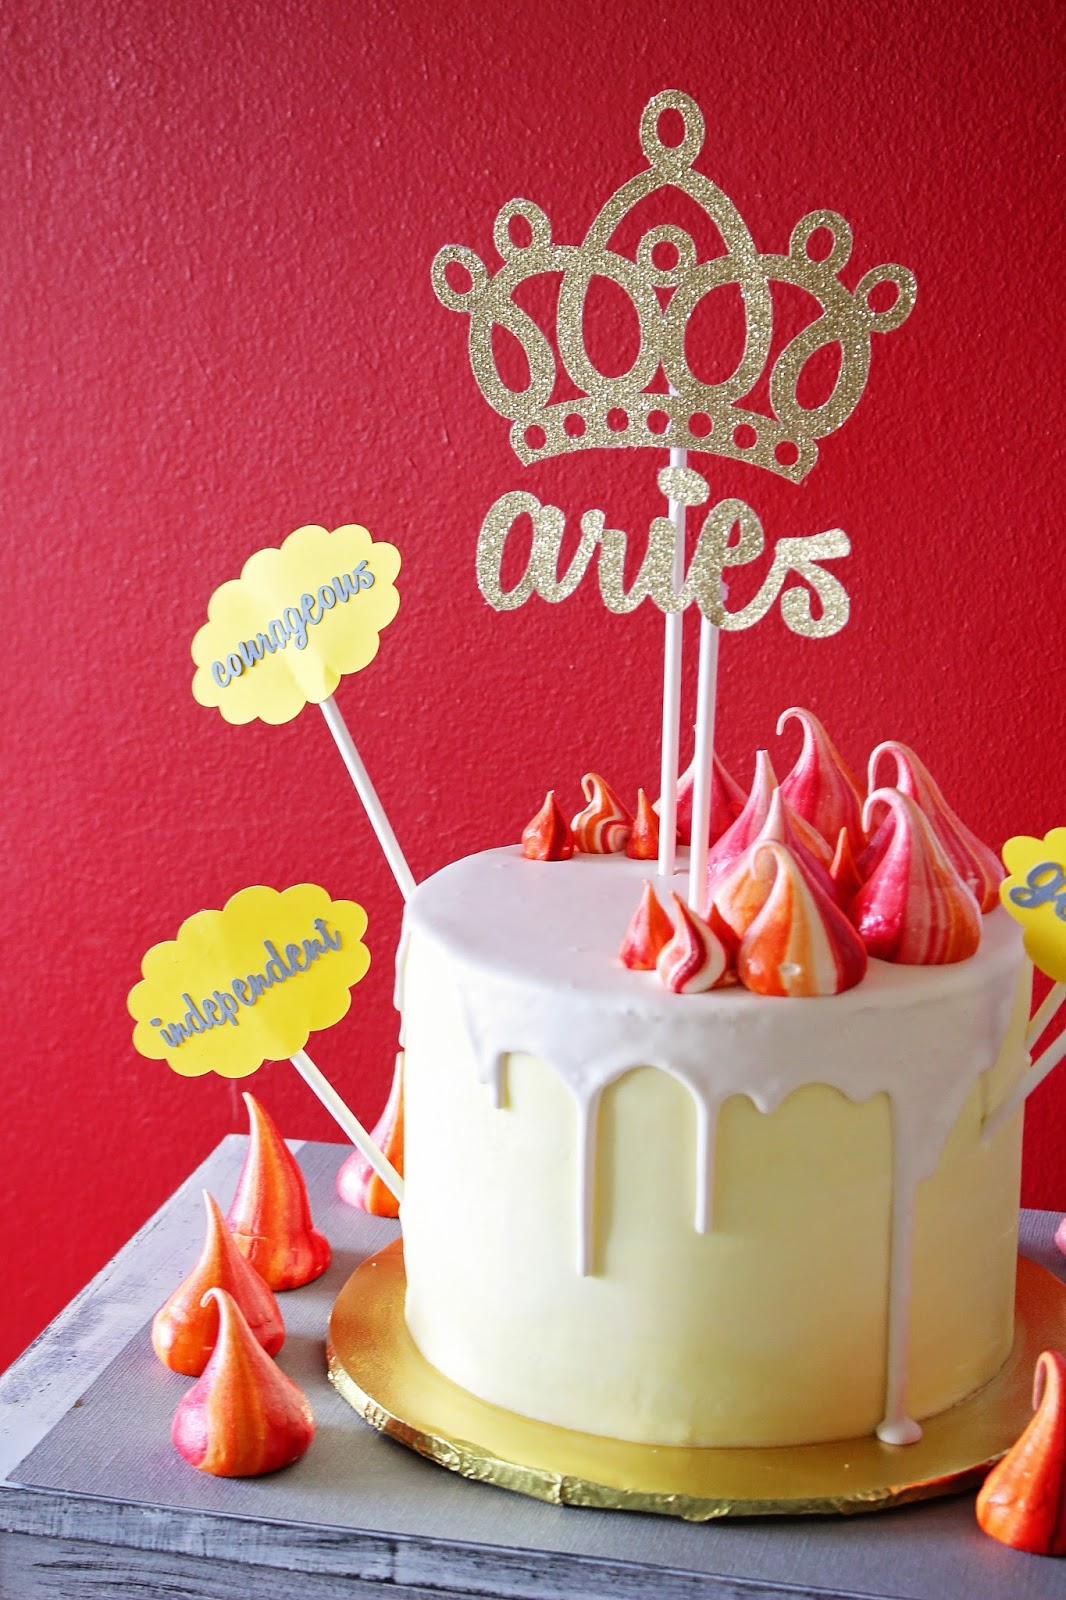 Fizzy Party: Aries Birthday Party